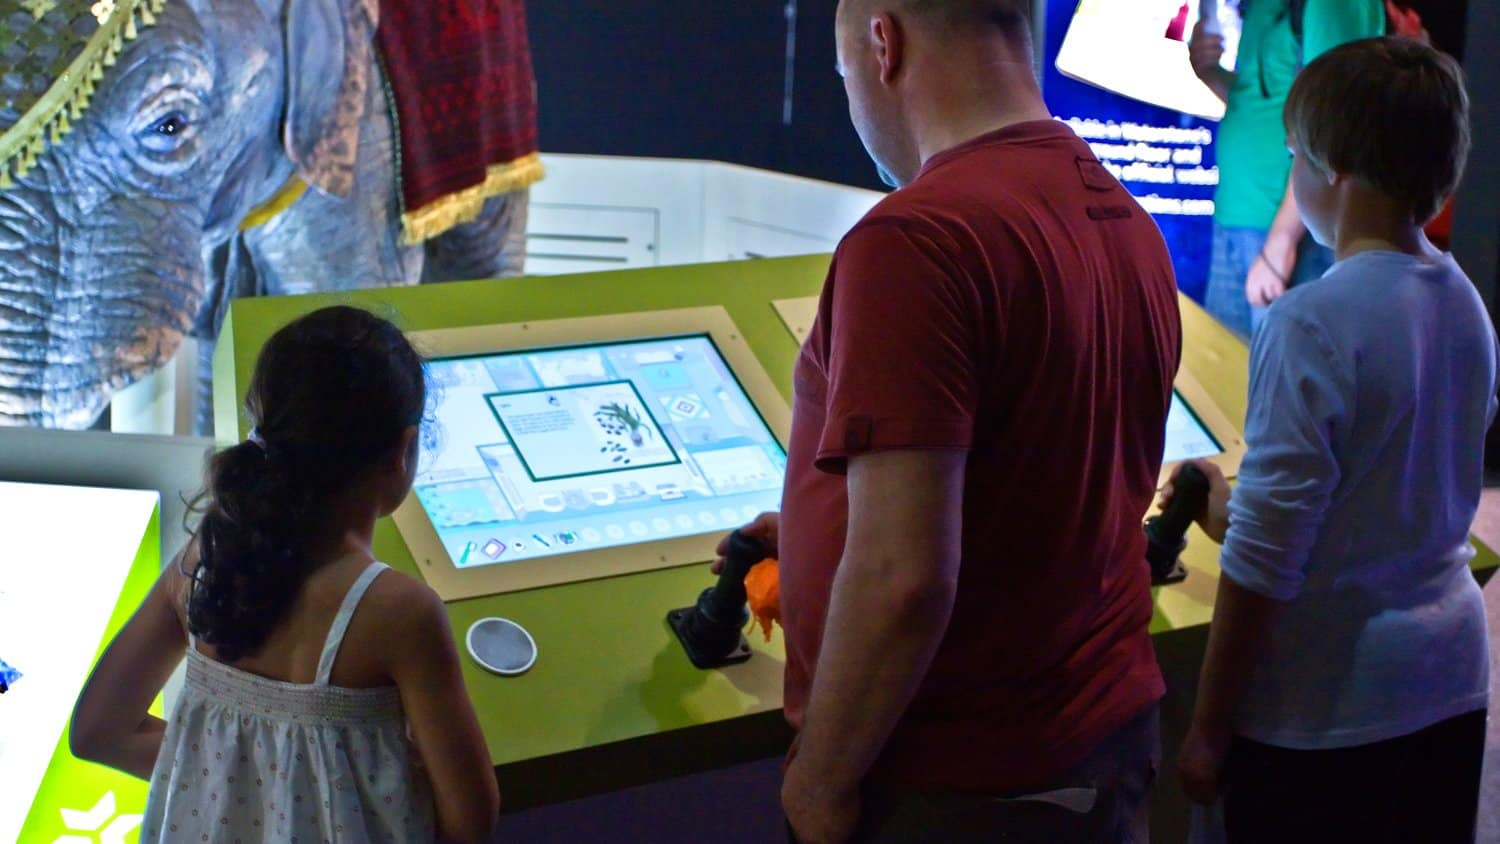 AV interactive at 1001 Inventions Exhibition in Science Museum London